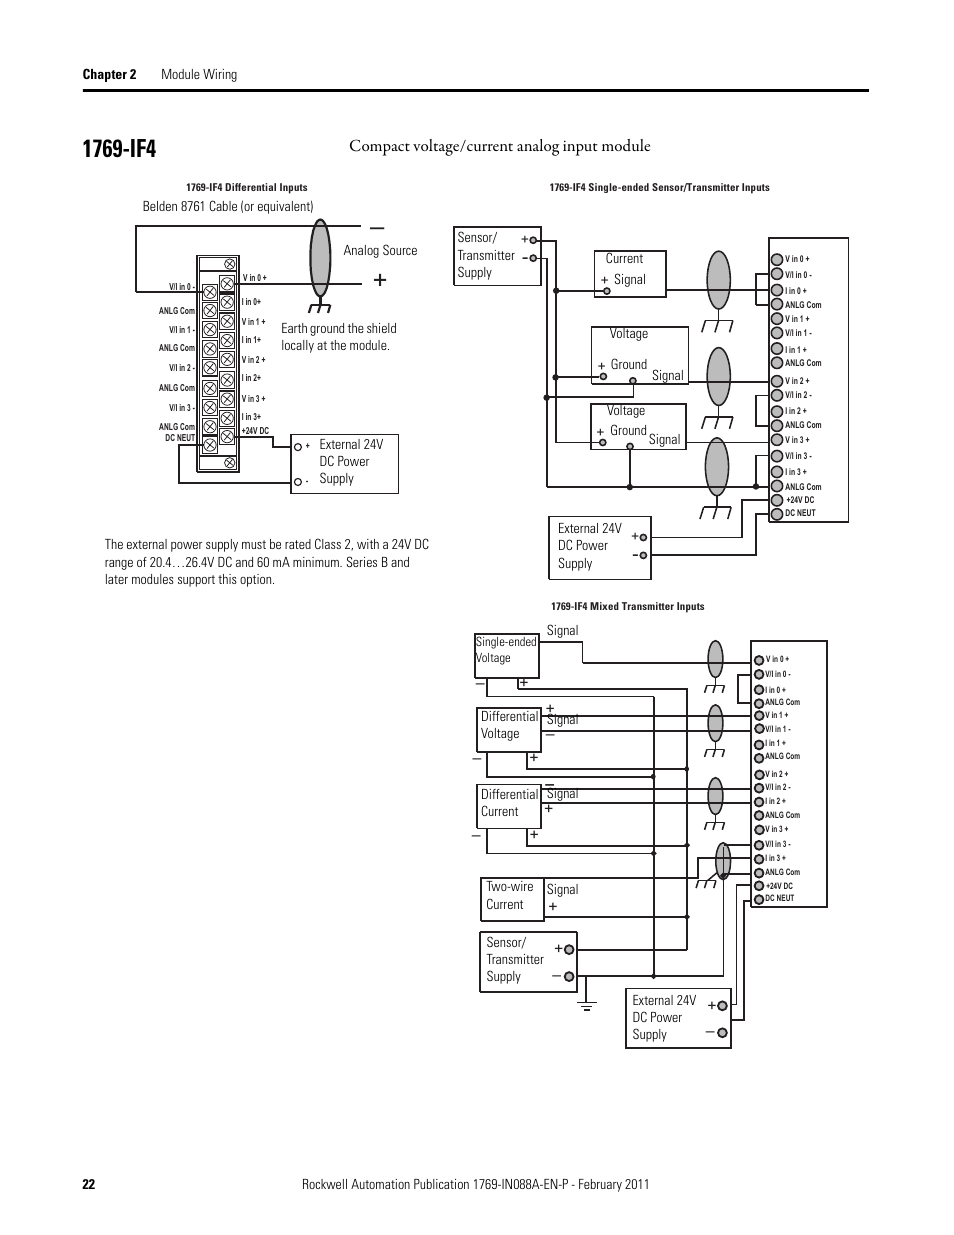 1769-if4, Compact voltage/current analog input module